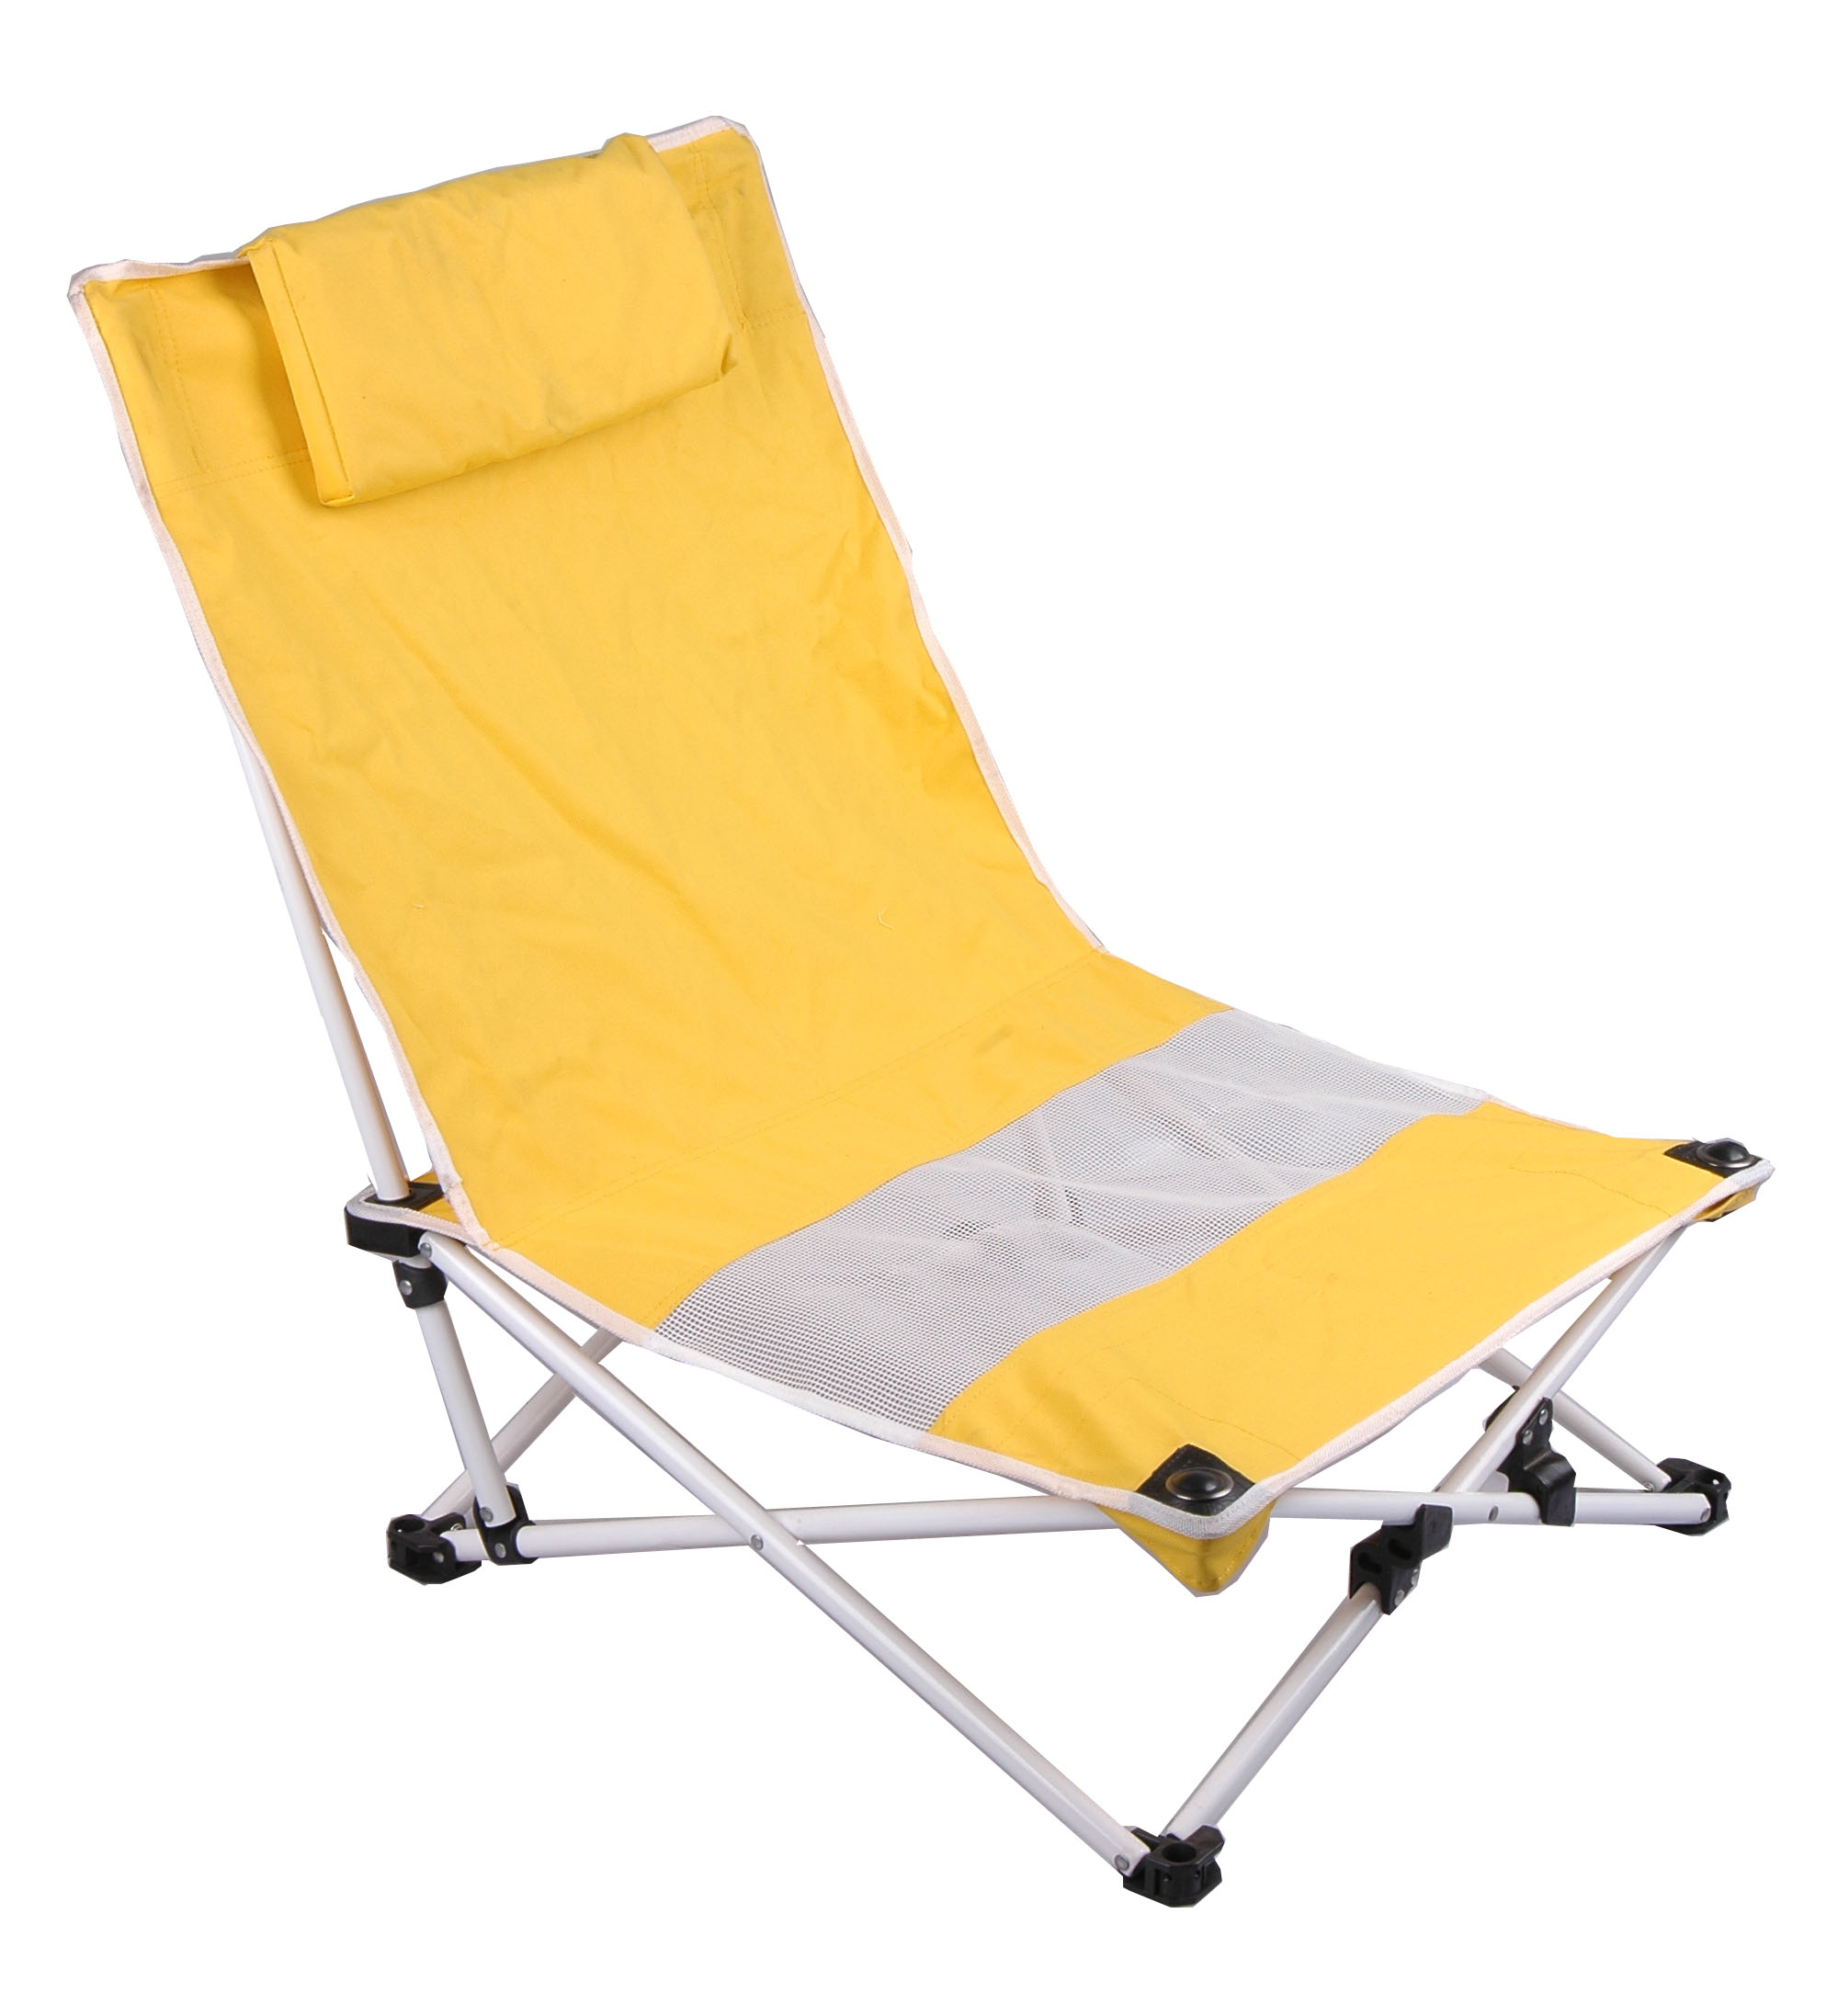 Portable Beach Chair Folding Camping Chair Lawn Chairs Camping Chair Portable